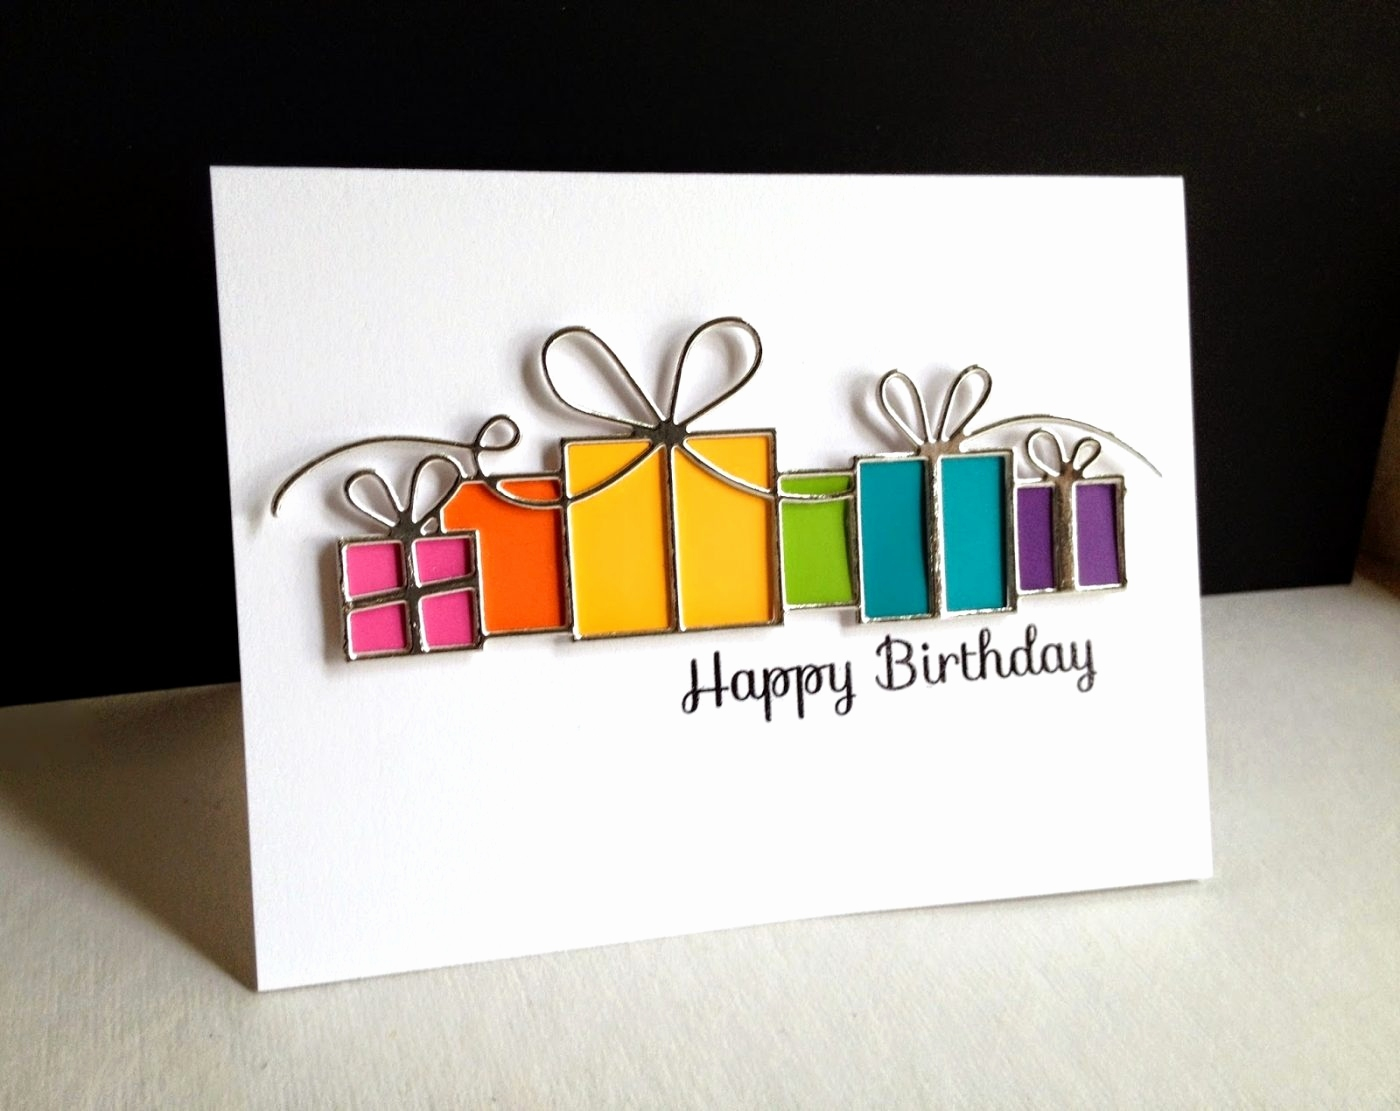 Funny Birthday Card Ideas For Friends Funny Birthday Cards Clean Inspirational Homemade Birthday Card